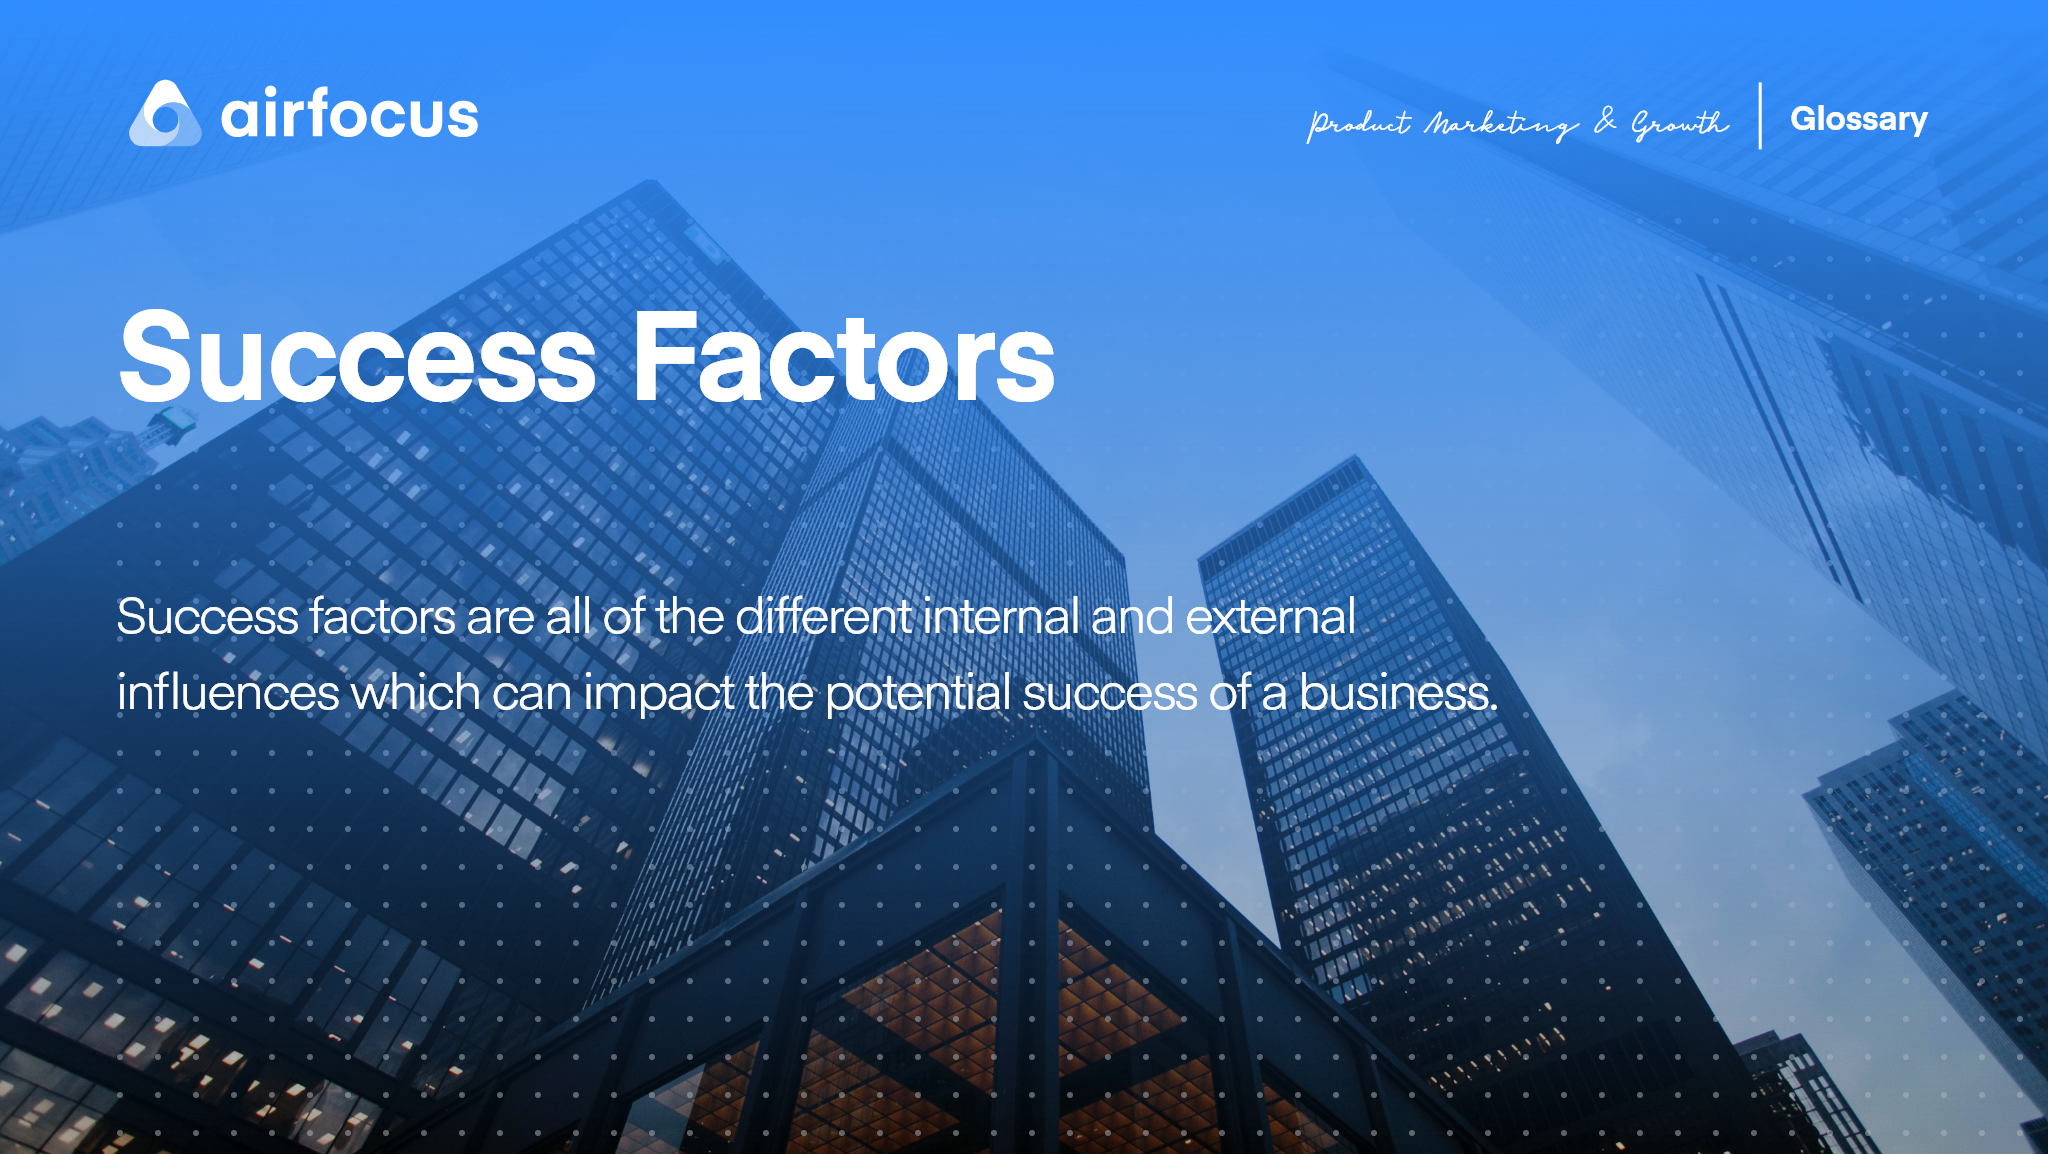 What are Success Factors